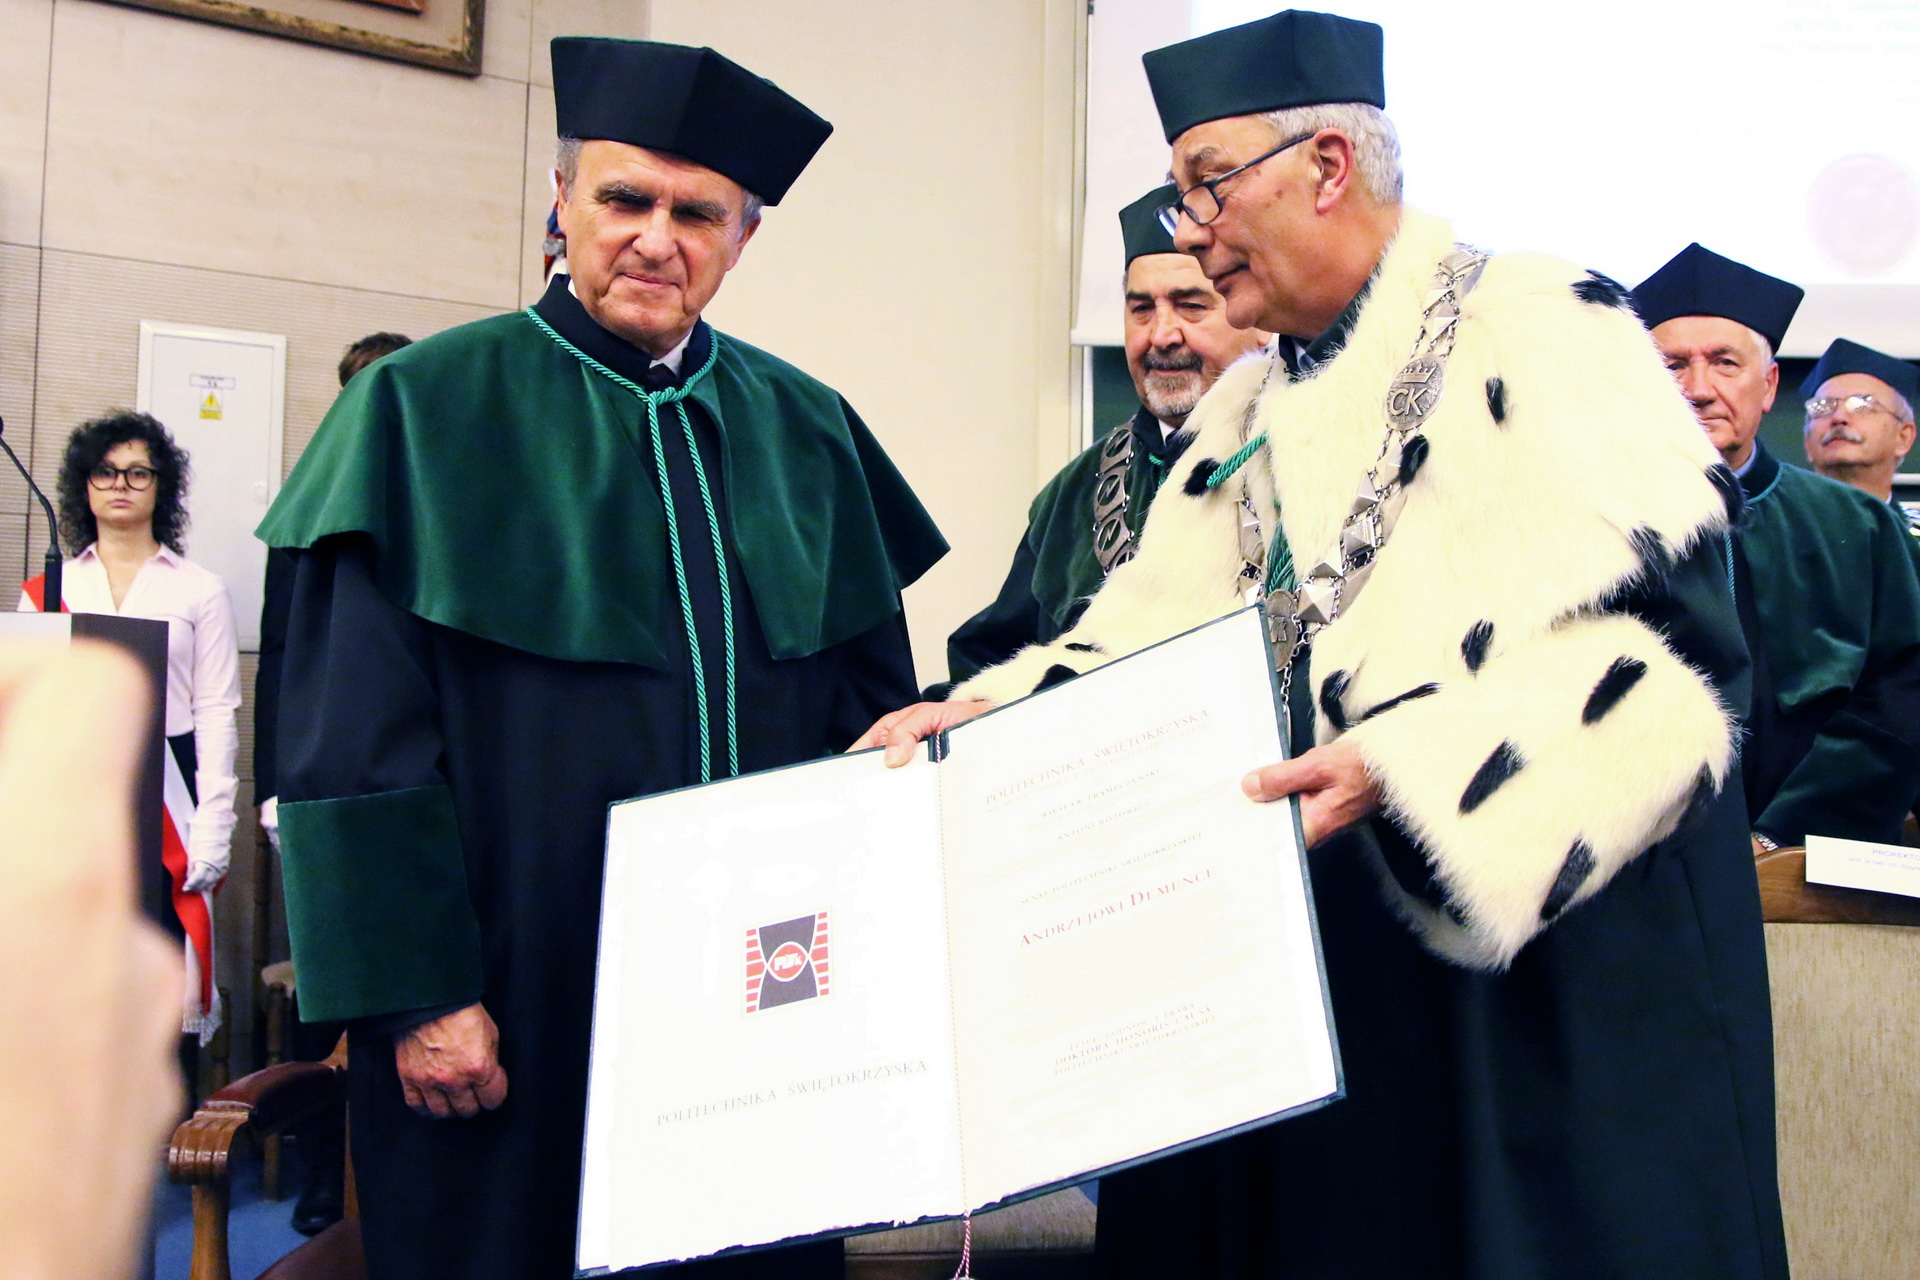 Doktor honoris causa